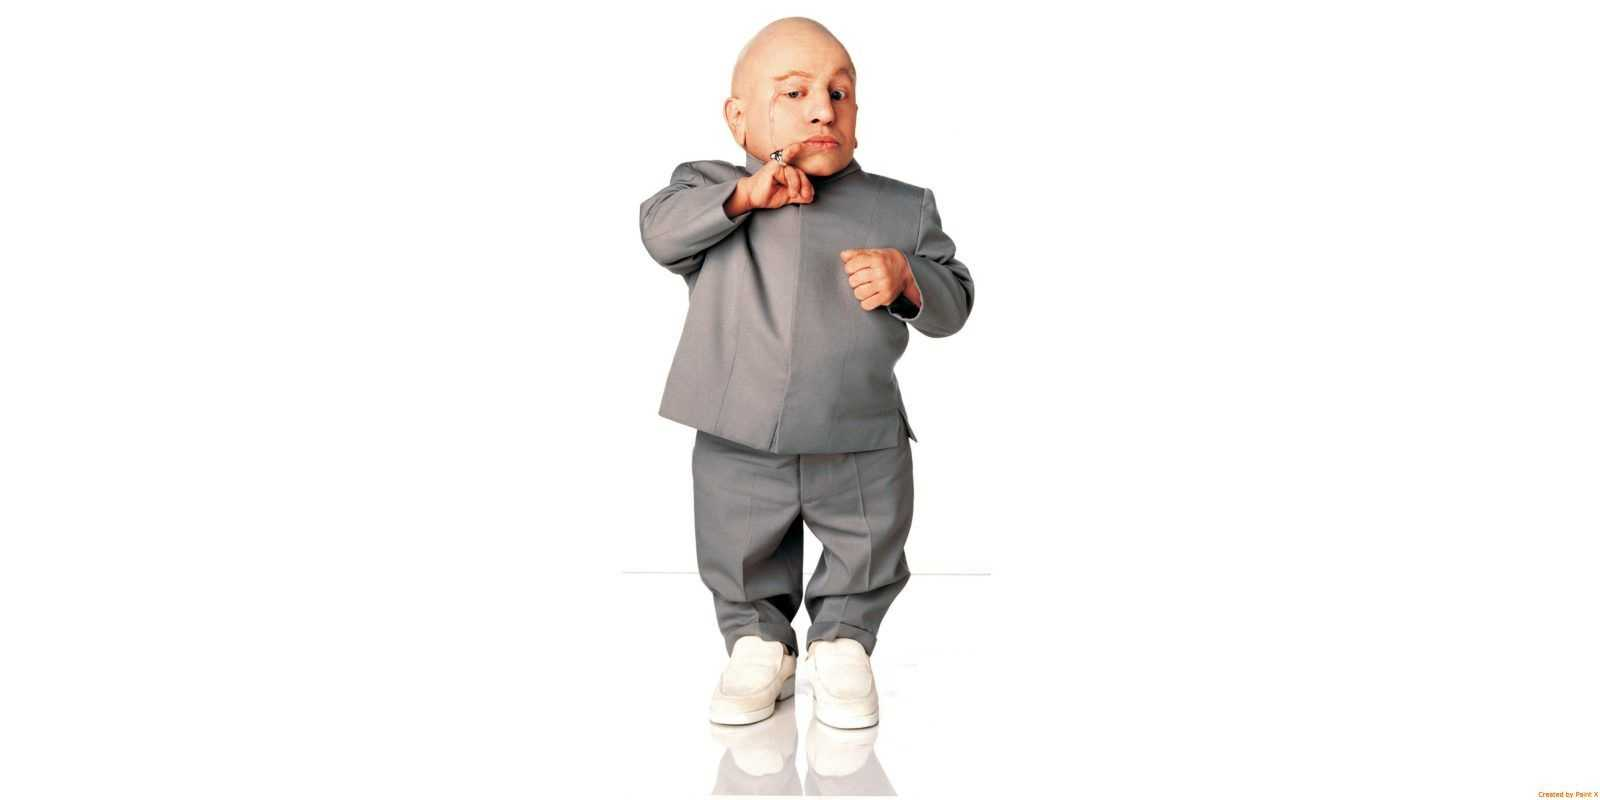 E' morto Verne Troyer, fu il Mini-Me in Austin Powers